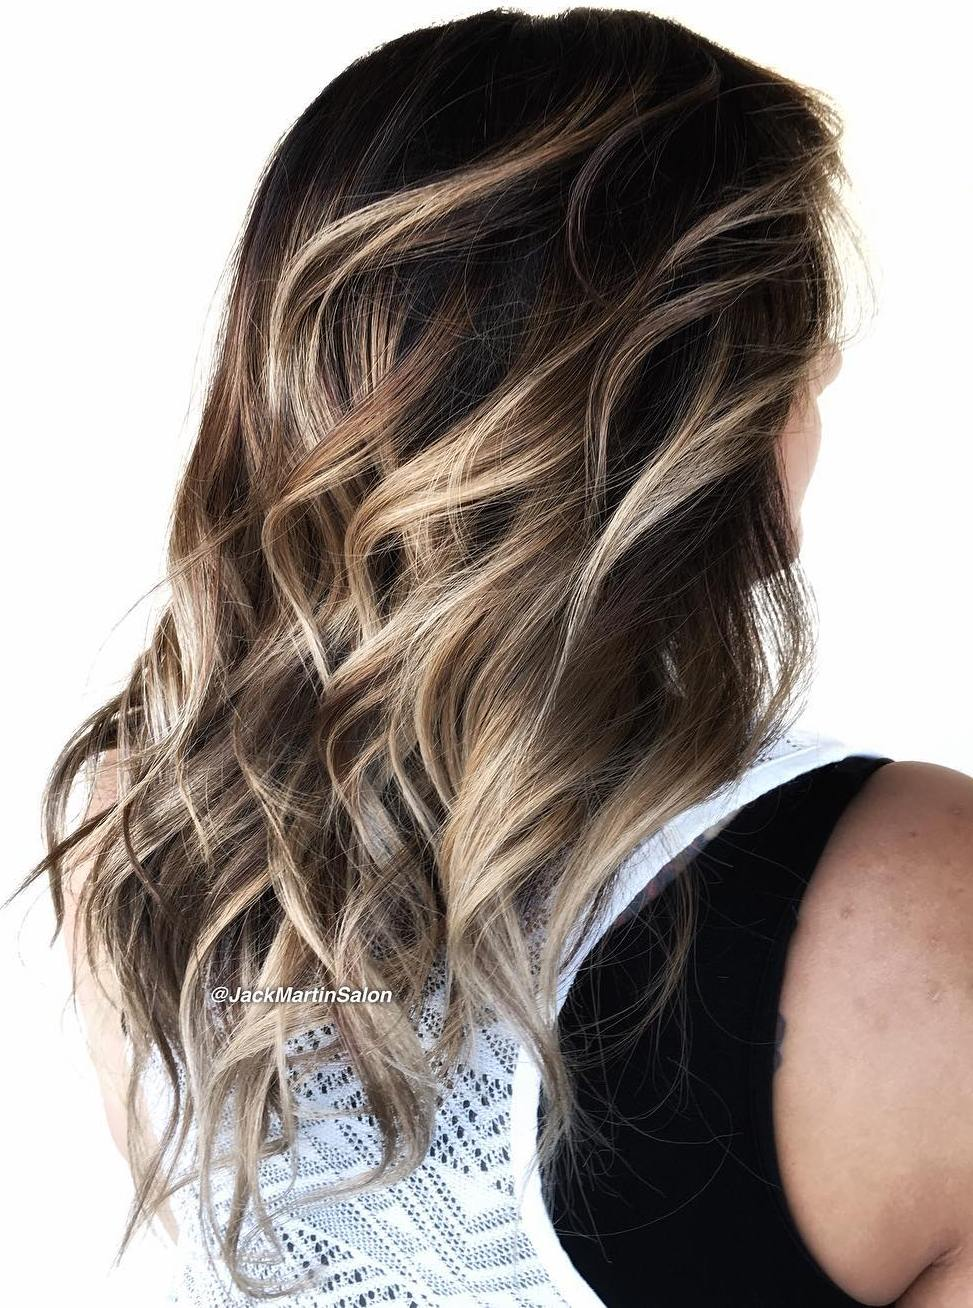 70 Balayage Hair Color Ideas with Blonde, Brown, Caramel ...